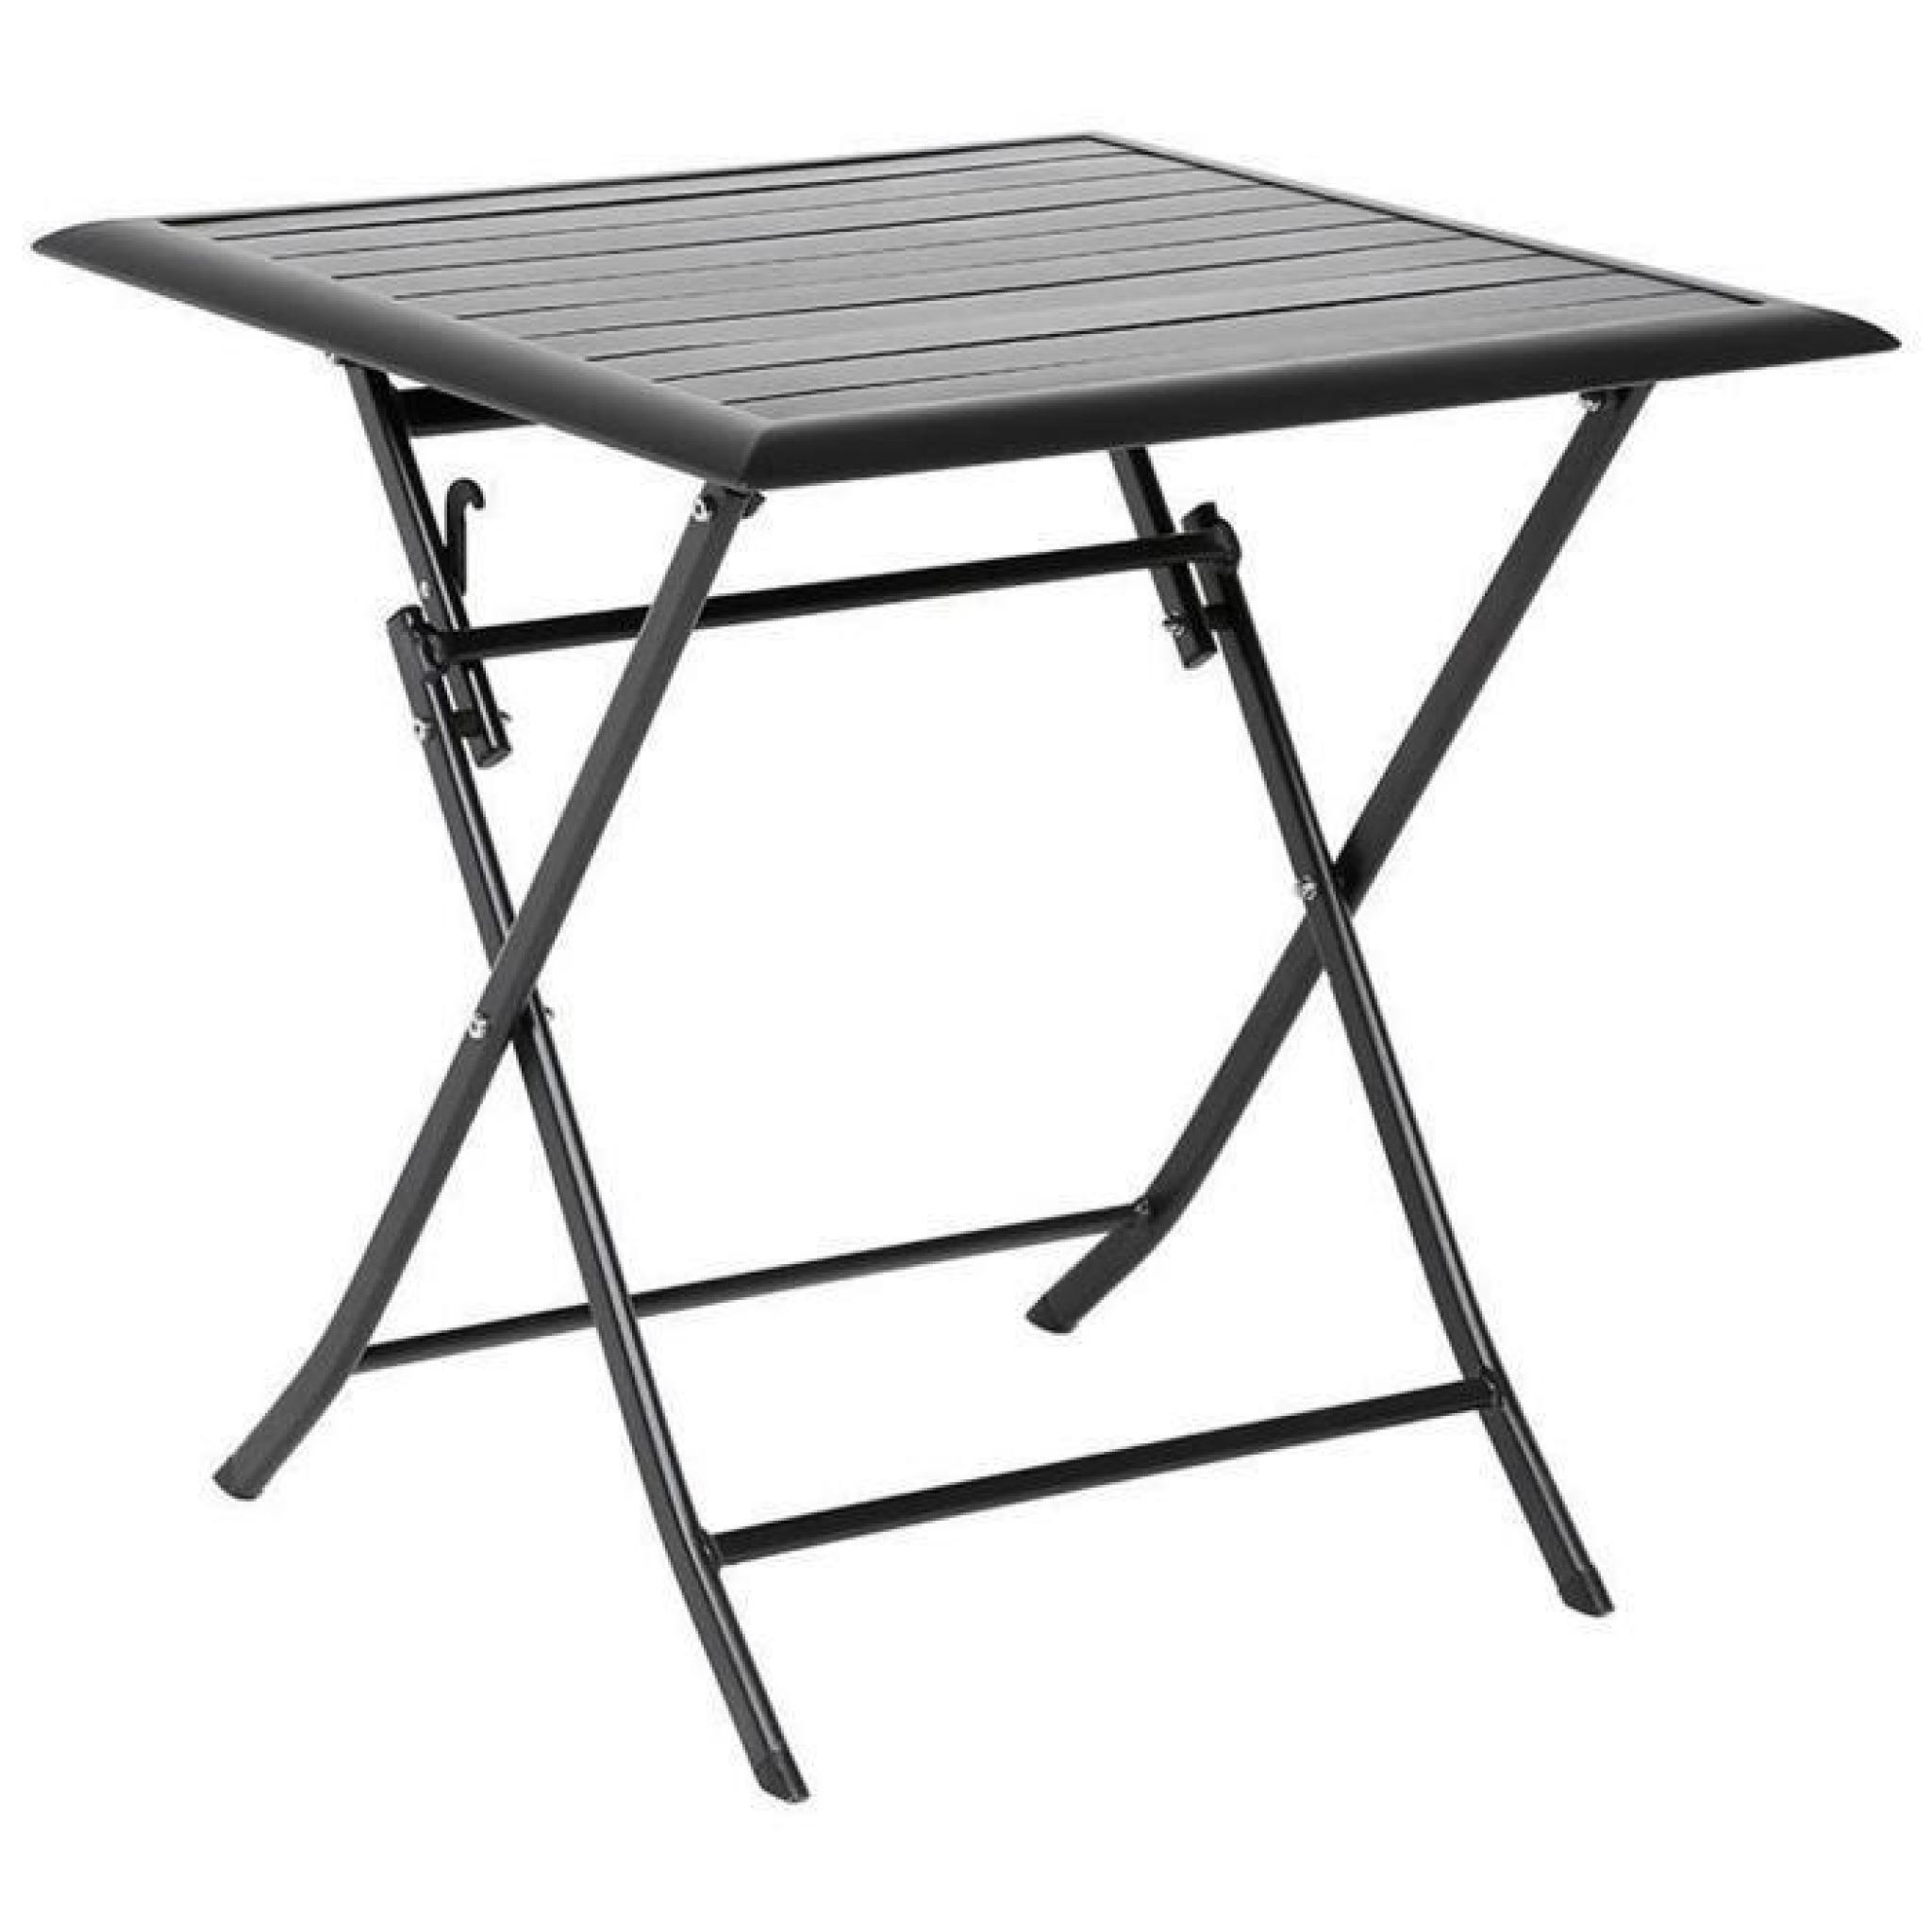 Table Aluminium Pliante Table Pliante Carrée En Aluminium Coloris Noir Dim L71cm X P71cm X H71cm